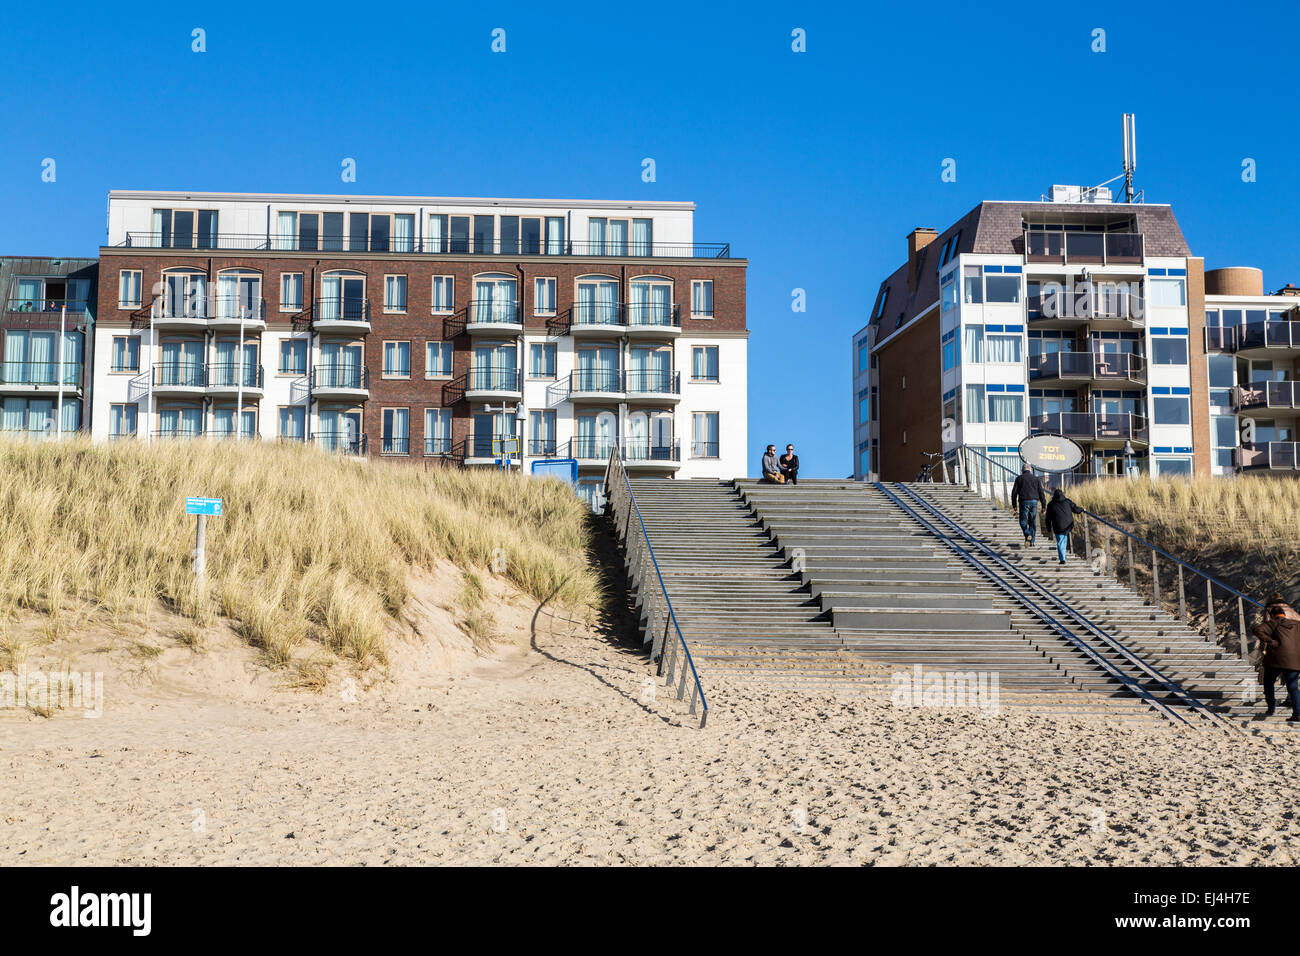 Hotel Golfzang Direct At The Beach In Egmond Aan Zee